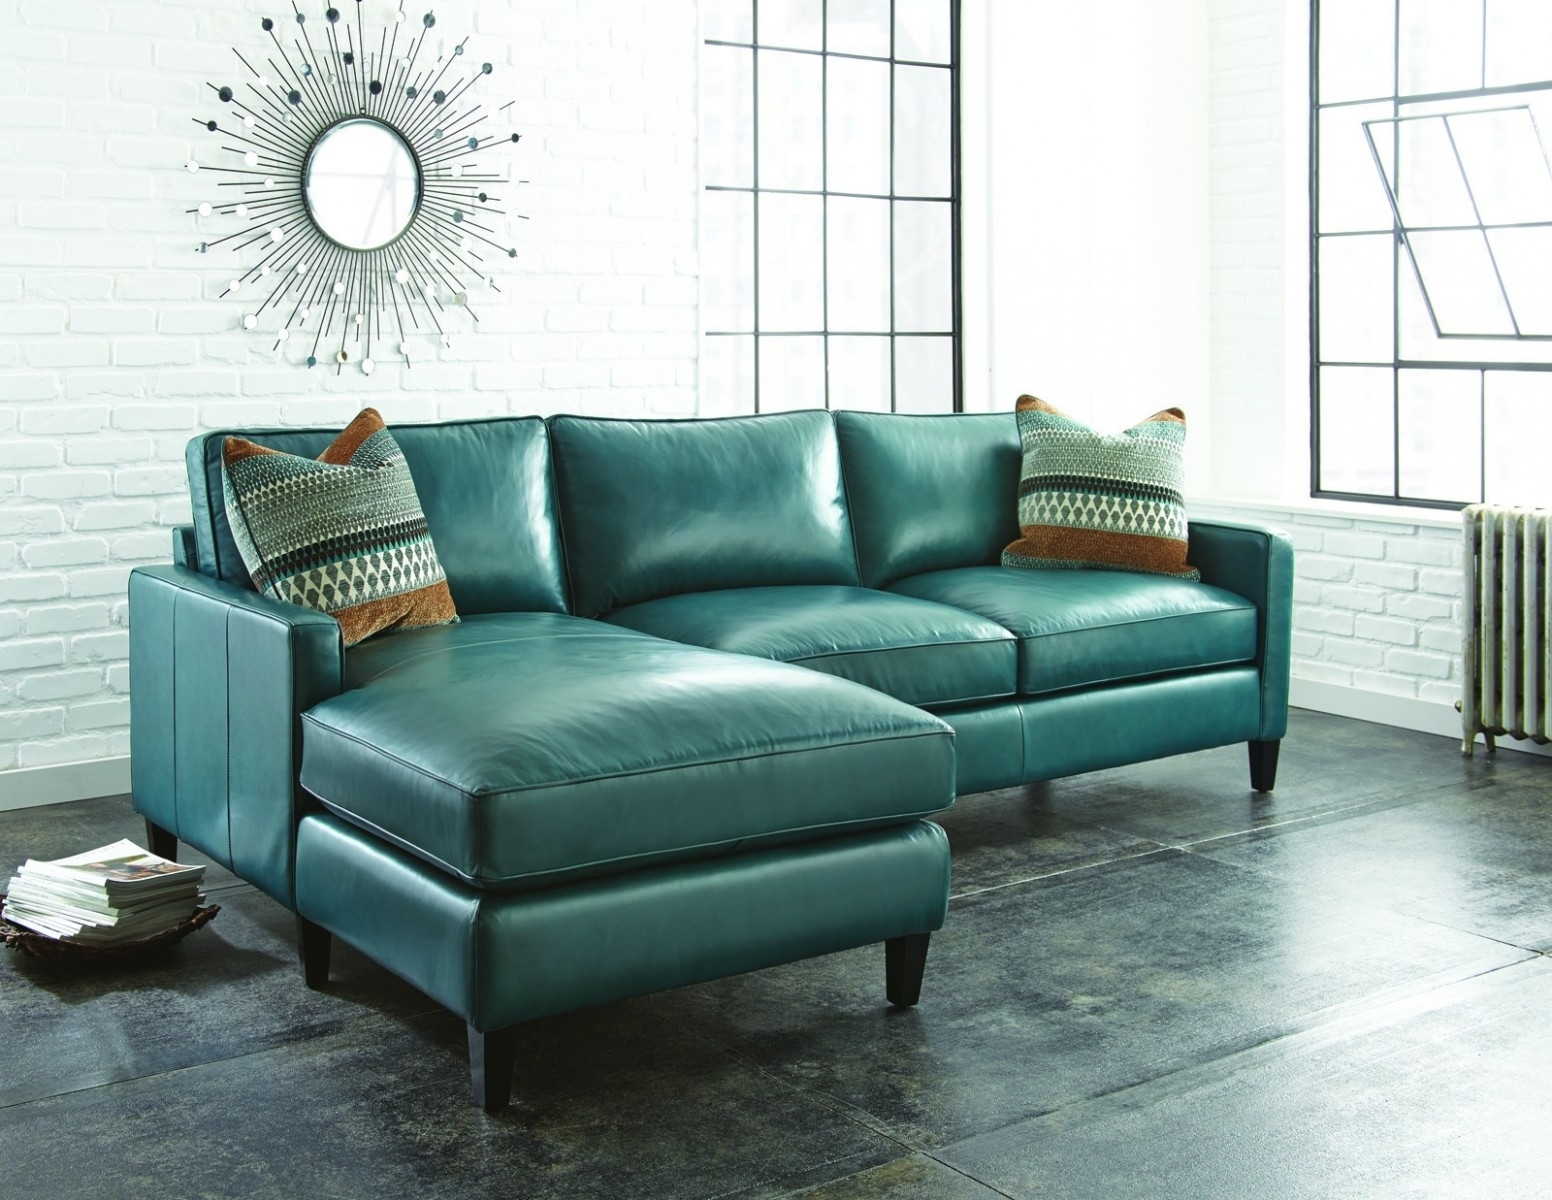 Aqua Green Leather Sofa – The Versatility And Allure Of Leather For Aqua Sofas (View 5 of 10)